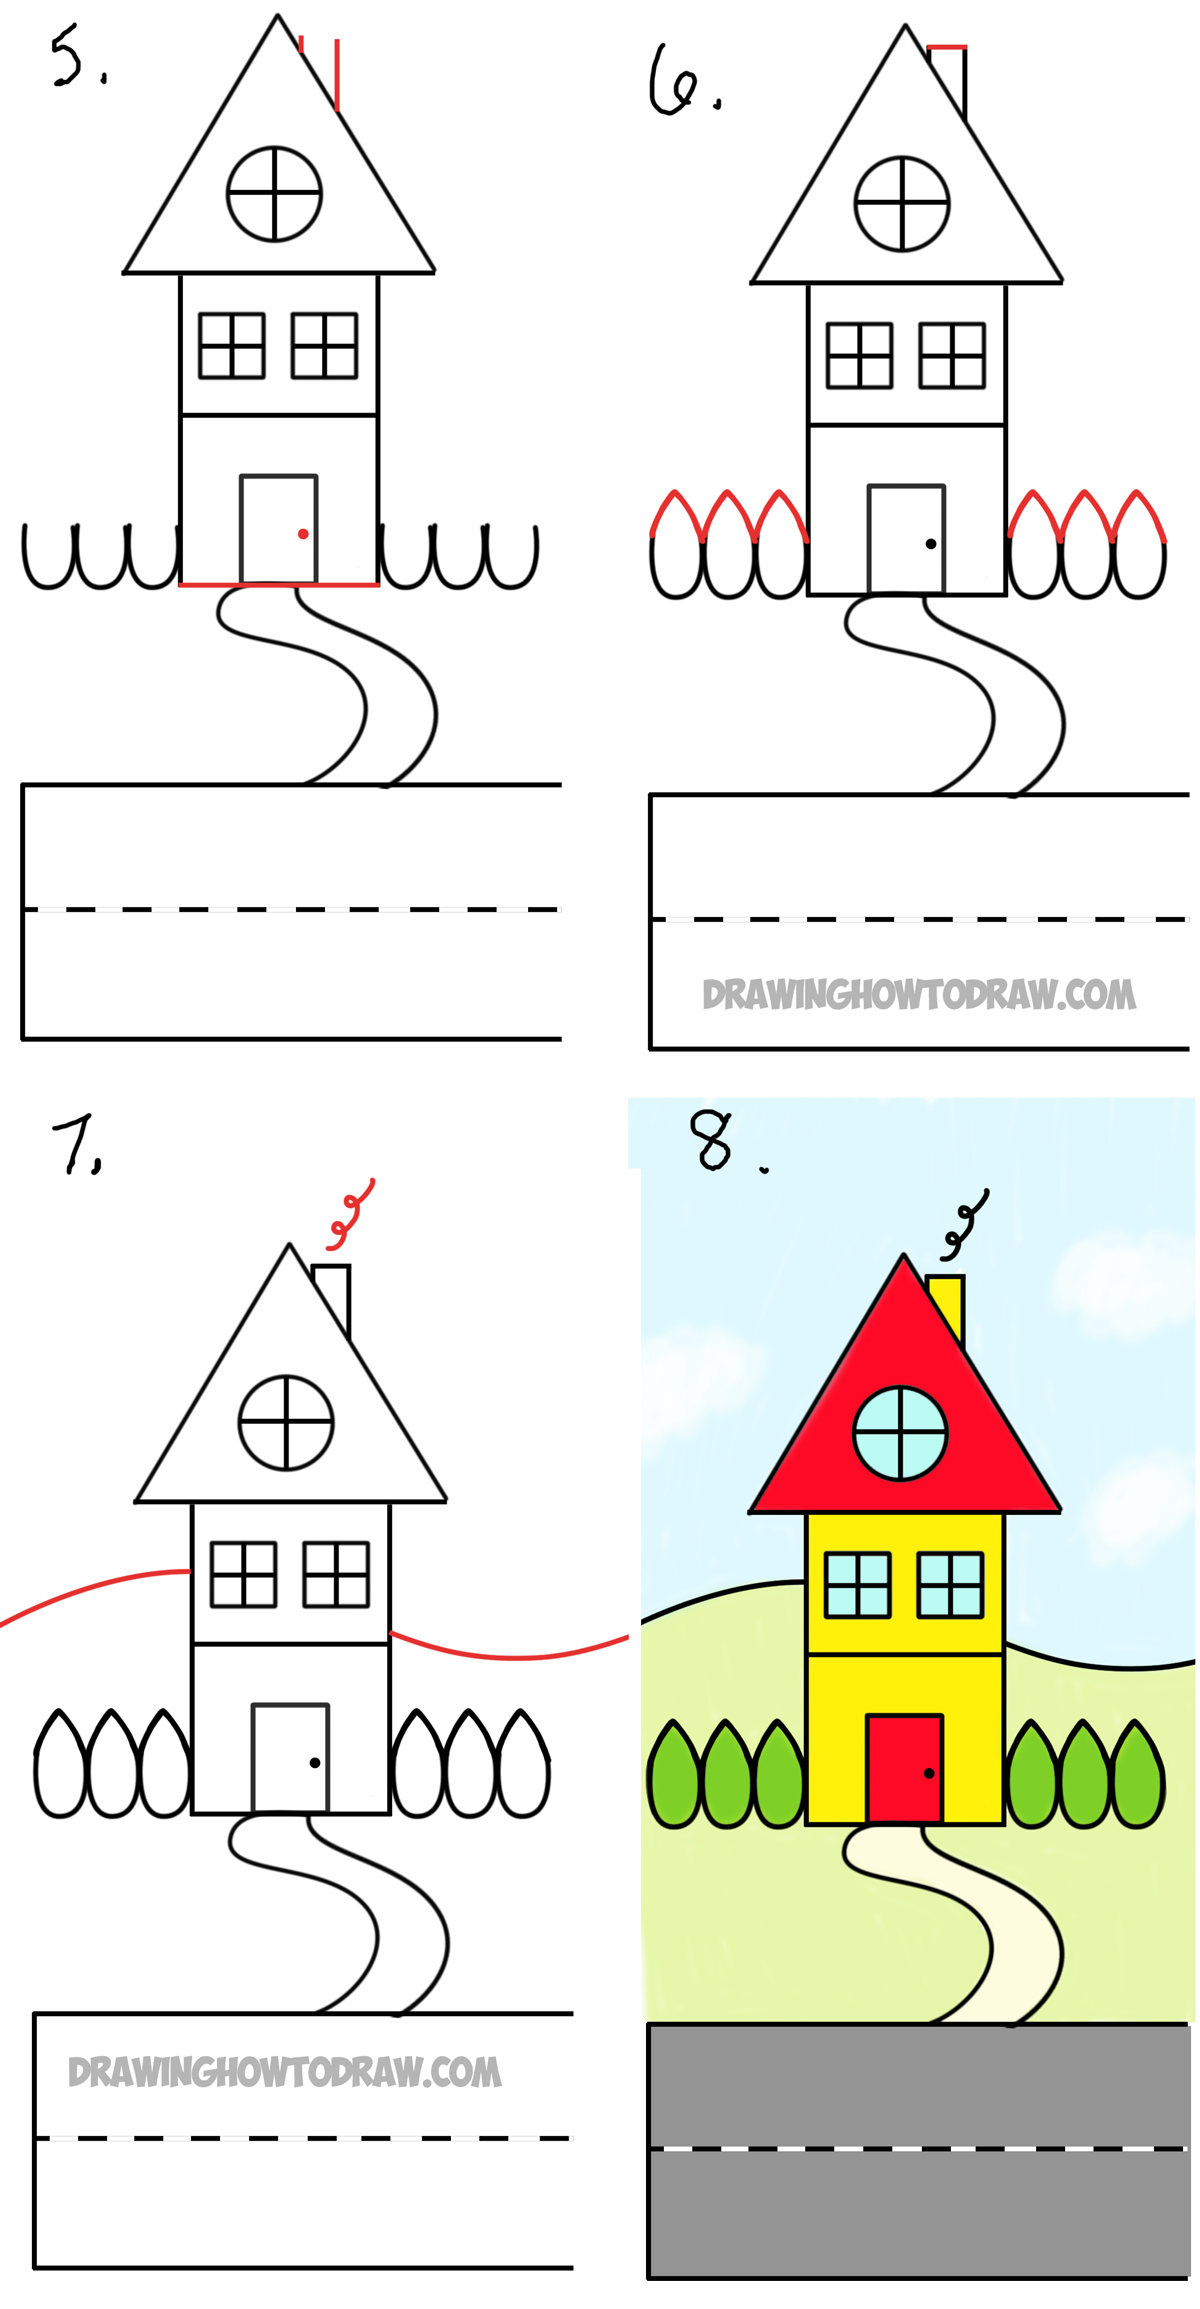 Diagram How To Draw House Kids Draw Diagram Full Version Hd Quality Draw Diagram Fetalheartdiagram Popup Galerie Fr